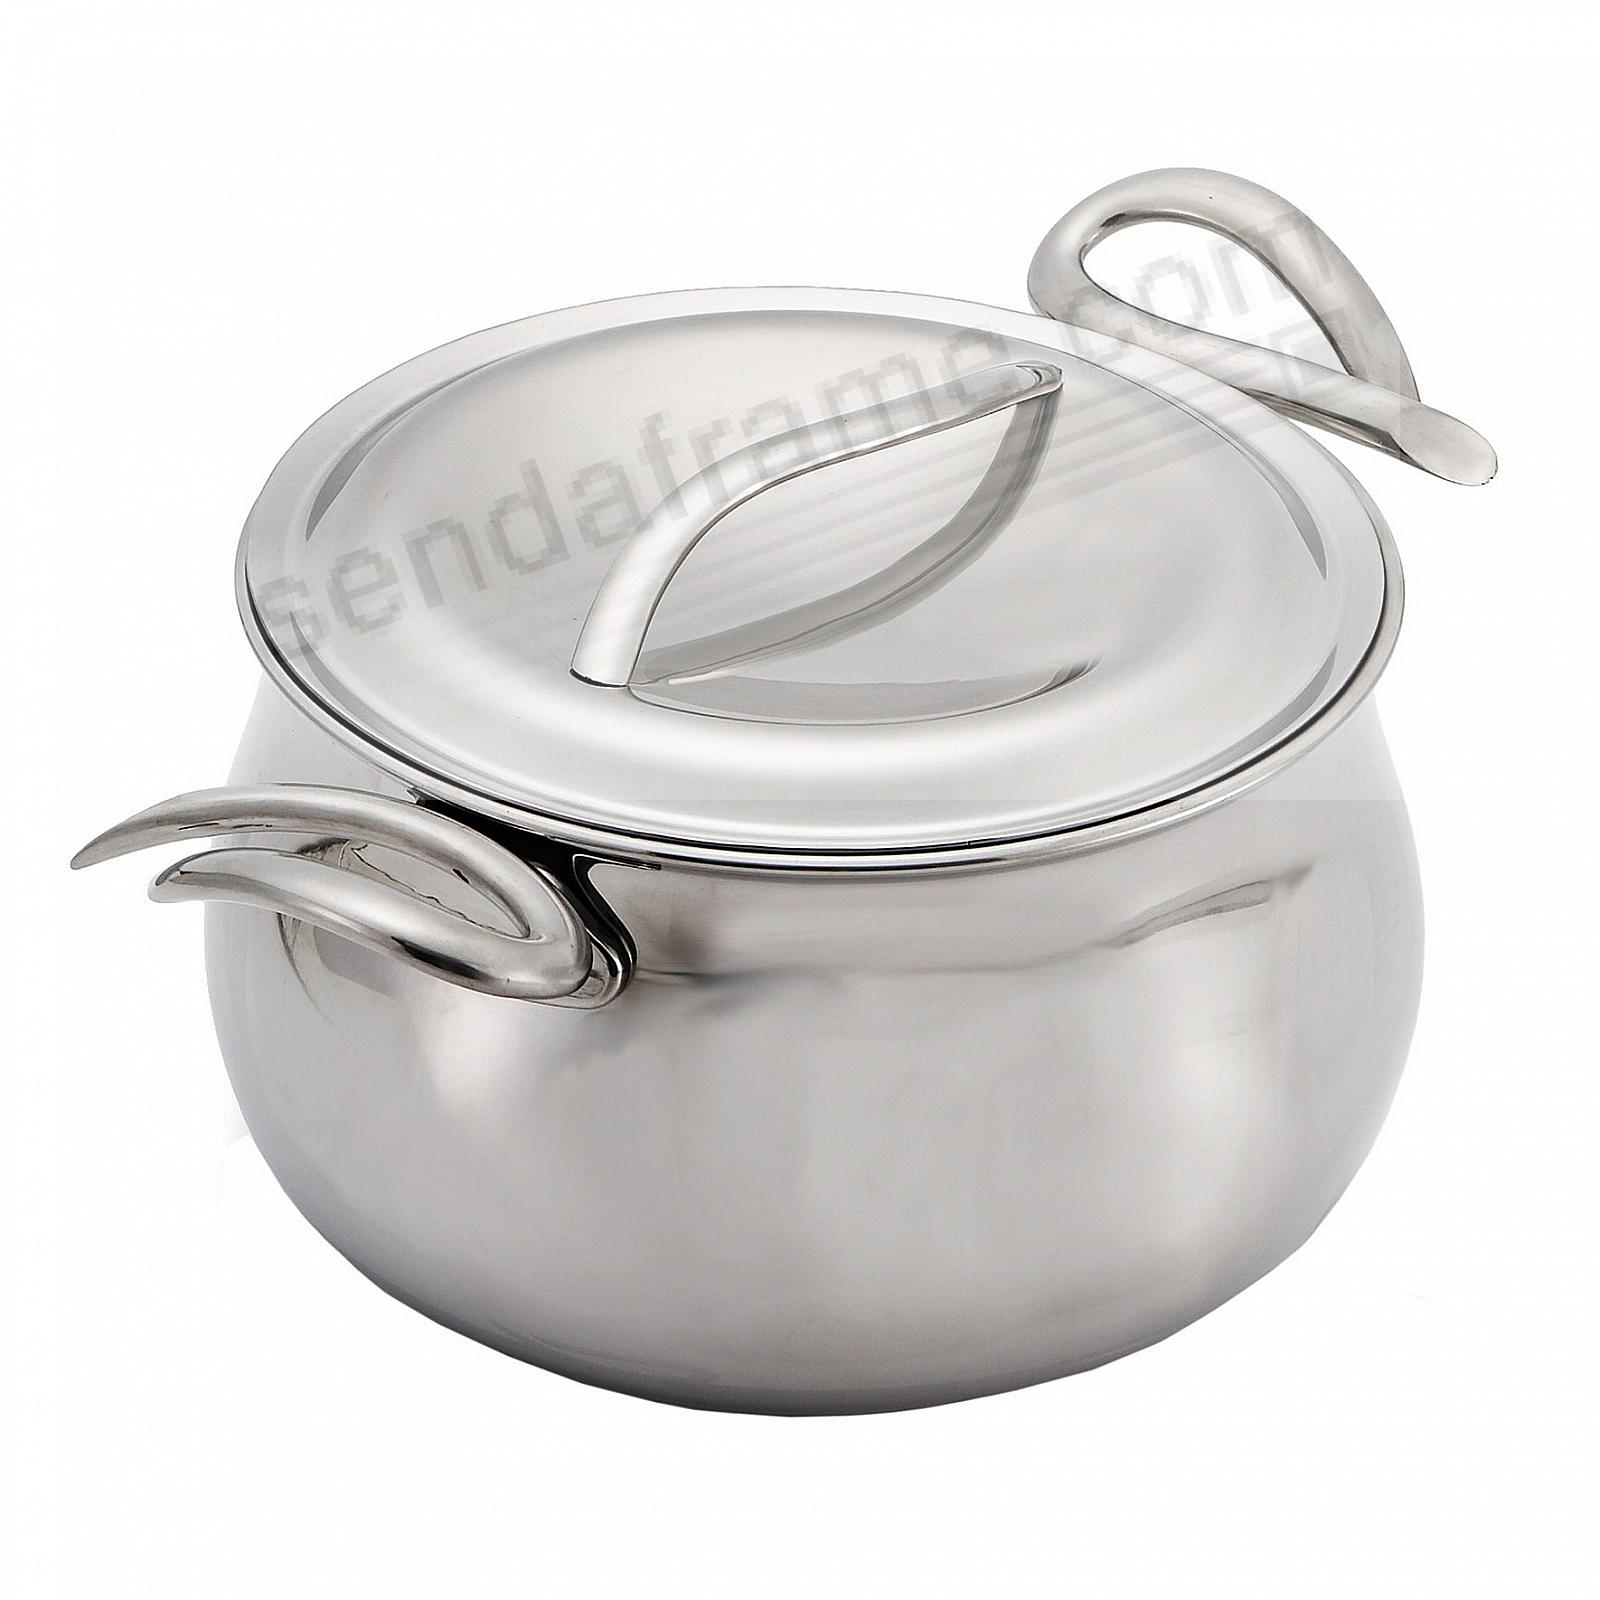 The Original CookServ 5-Qt Stock Pot w/Lid by Nambe®